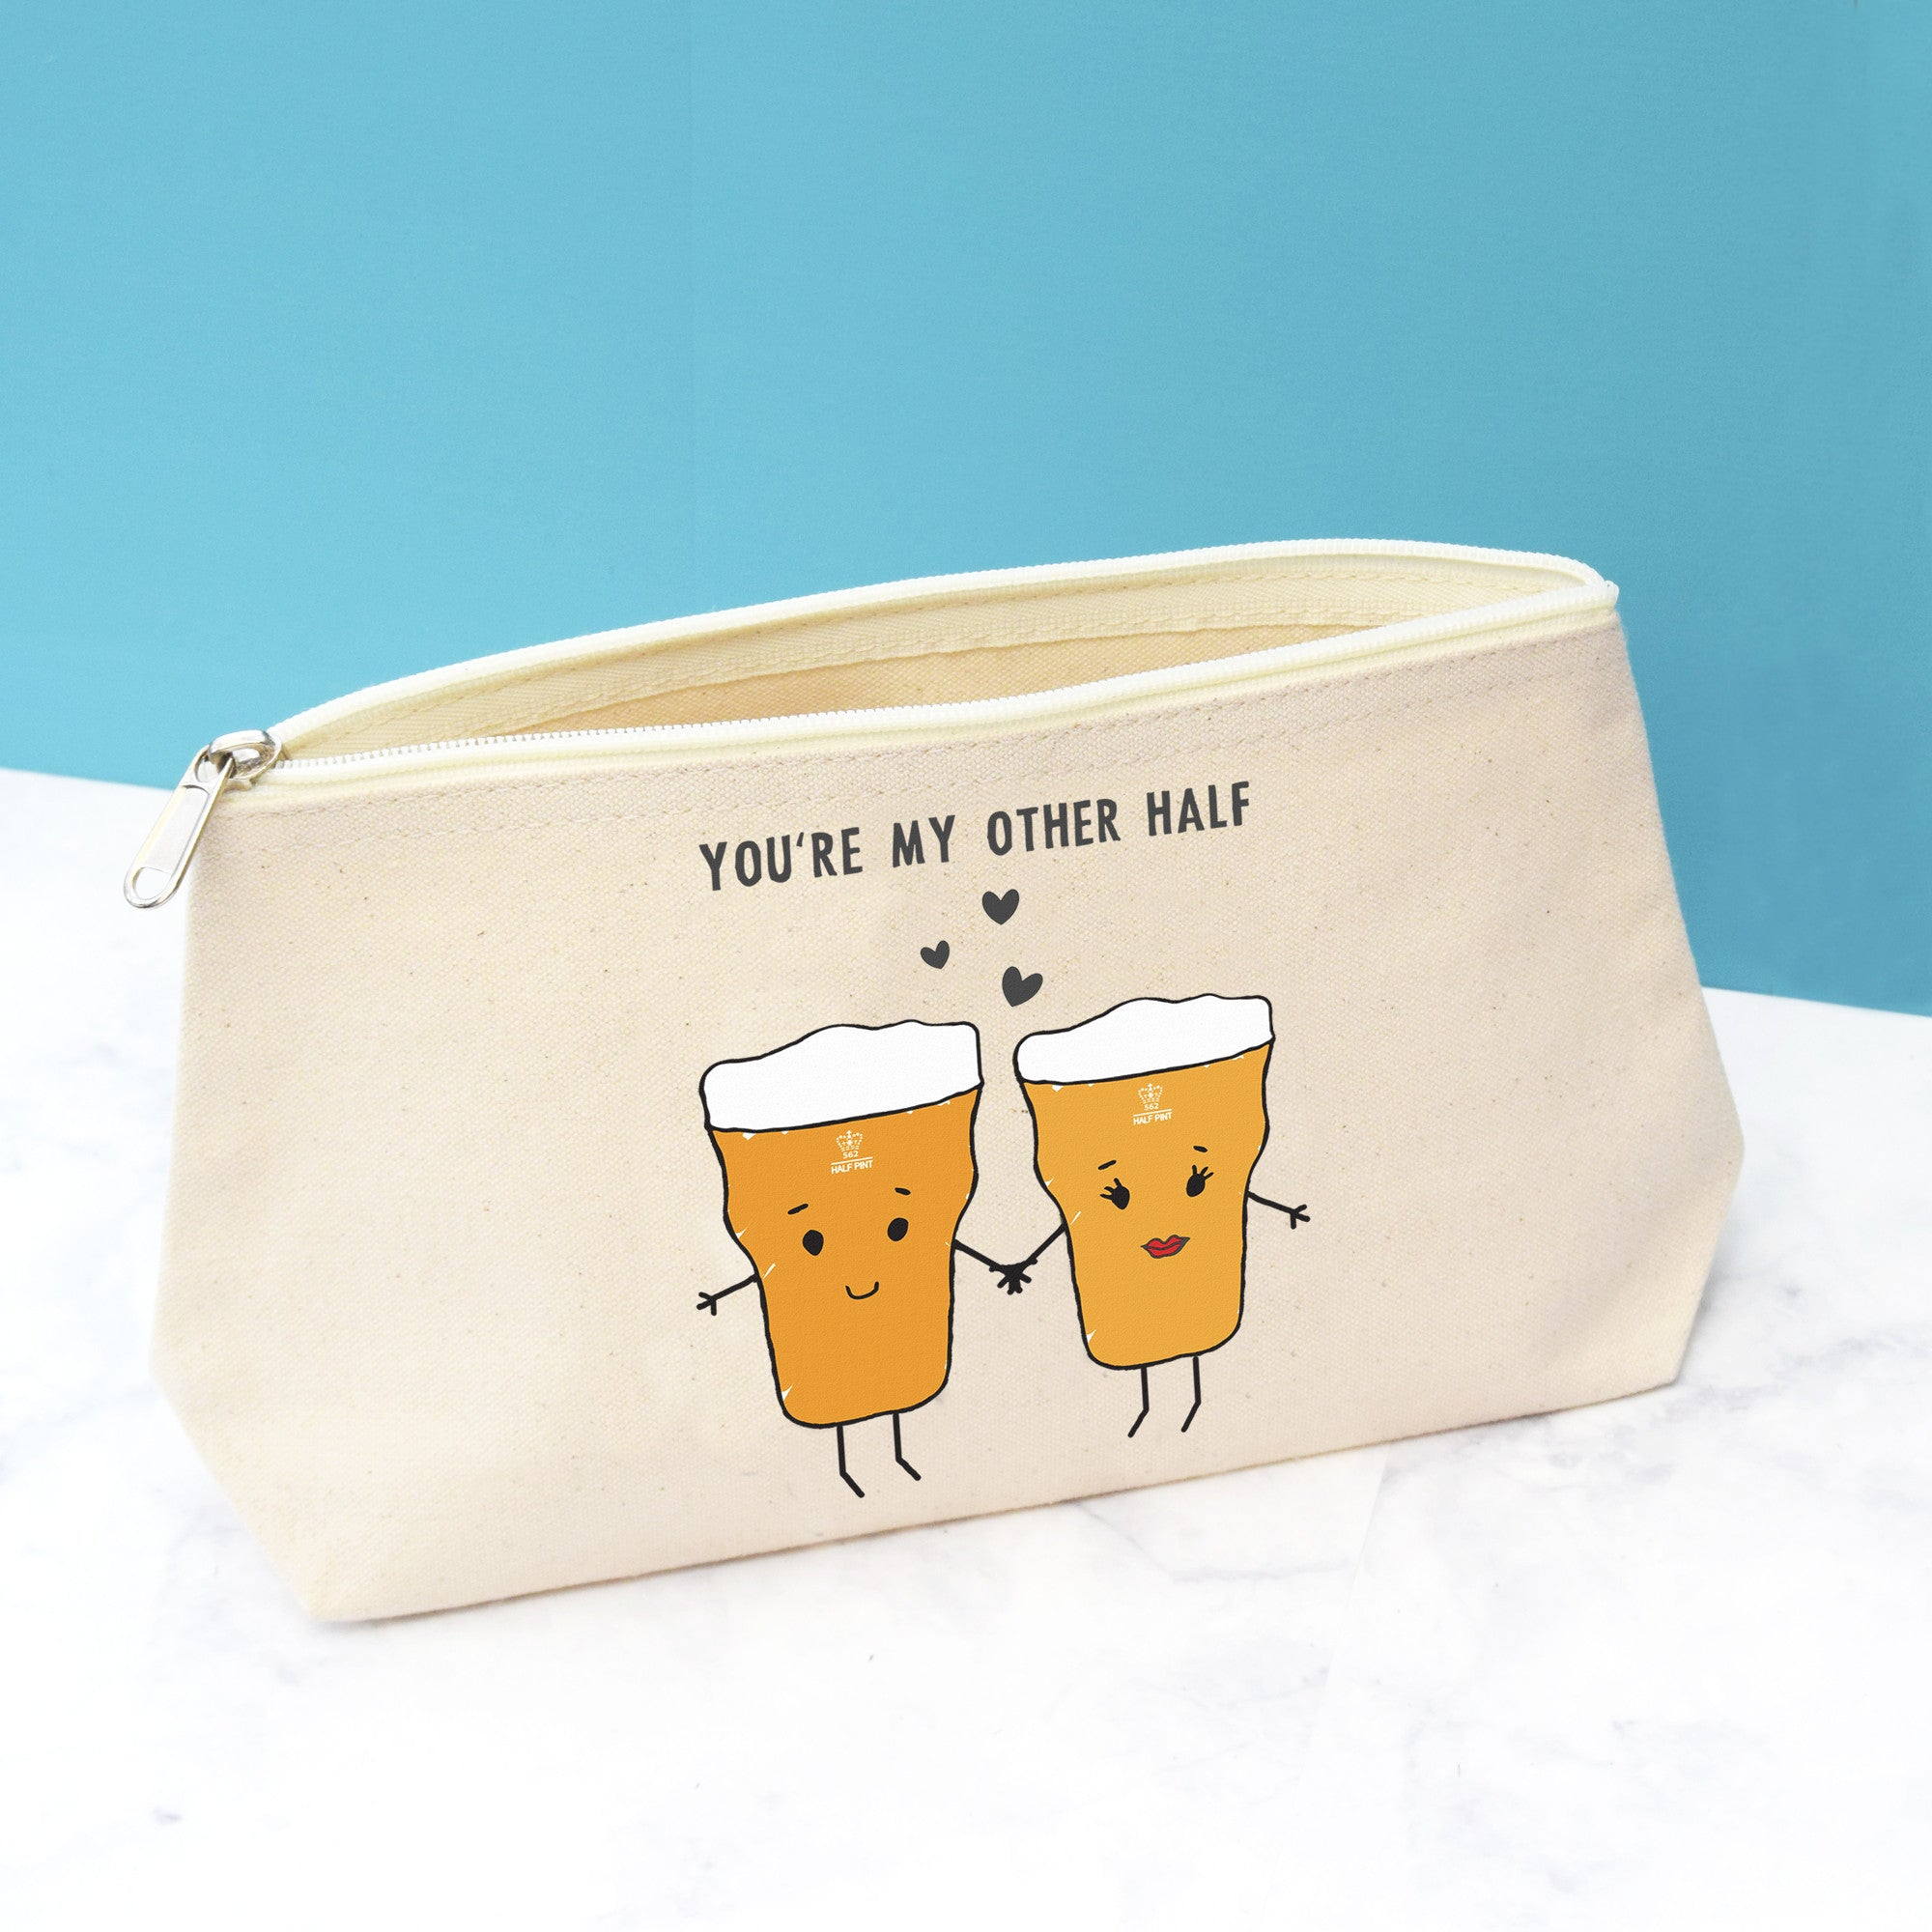 'You're My Other Half' Wash Bag